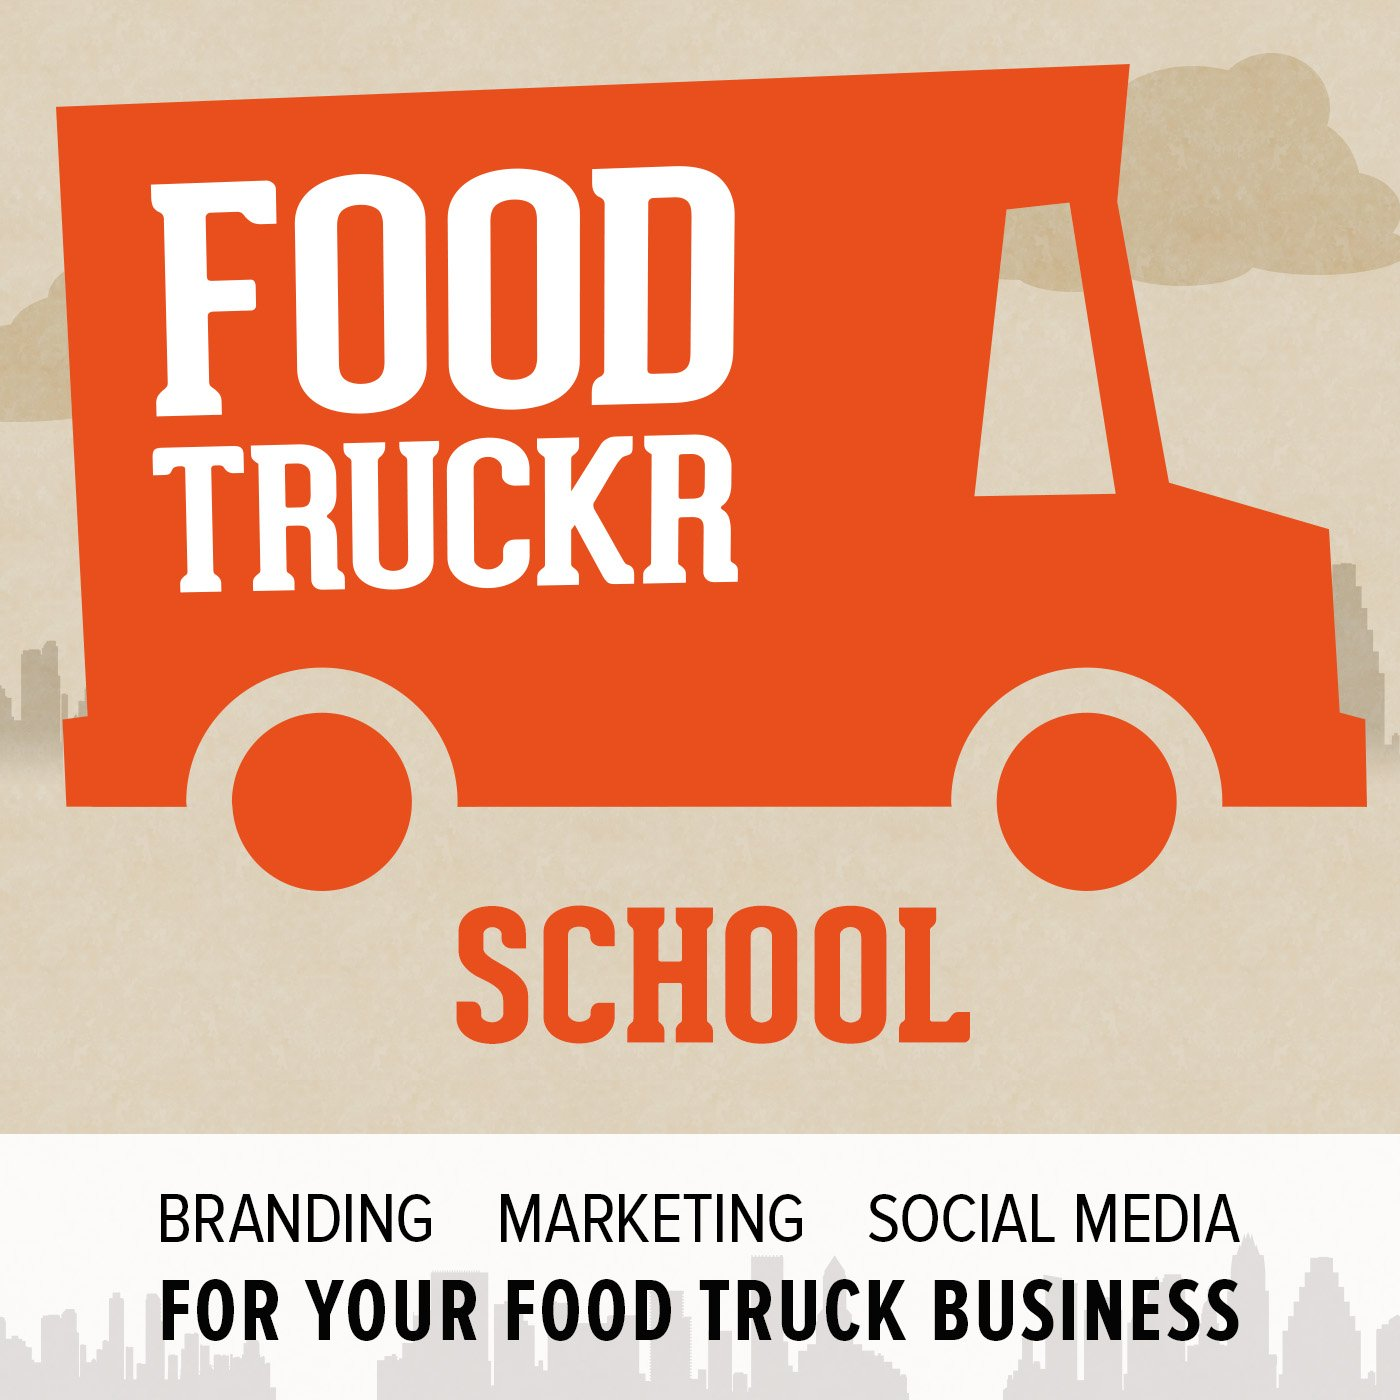 FoodTruckr School – How to Start, Run and Grow a Successful Food Truck Business